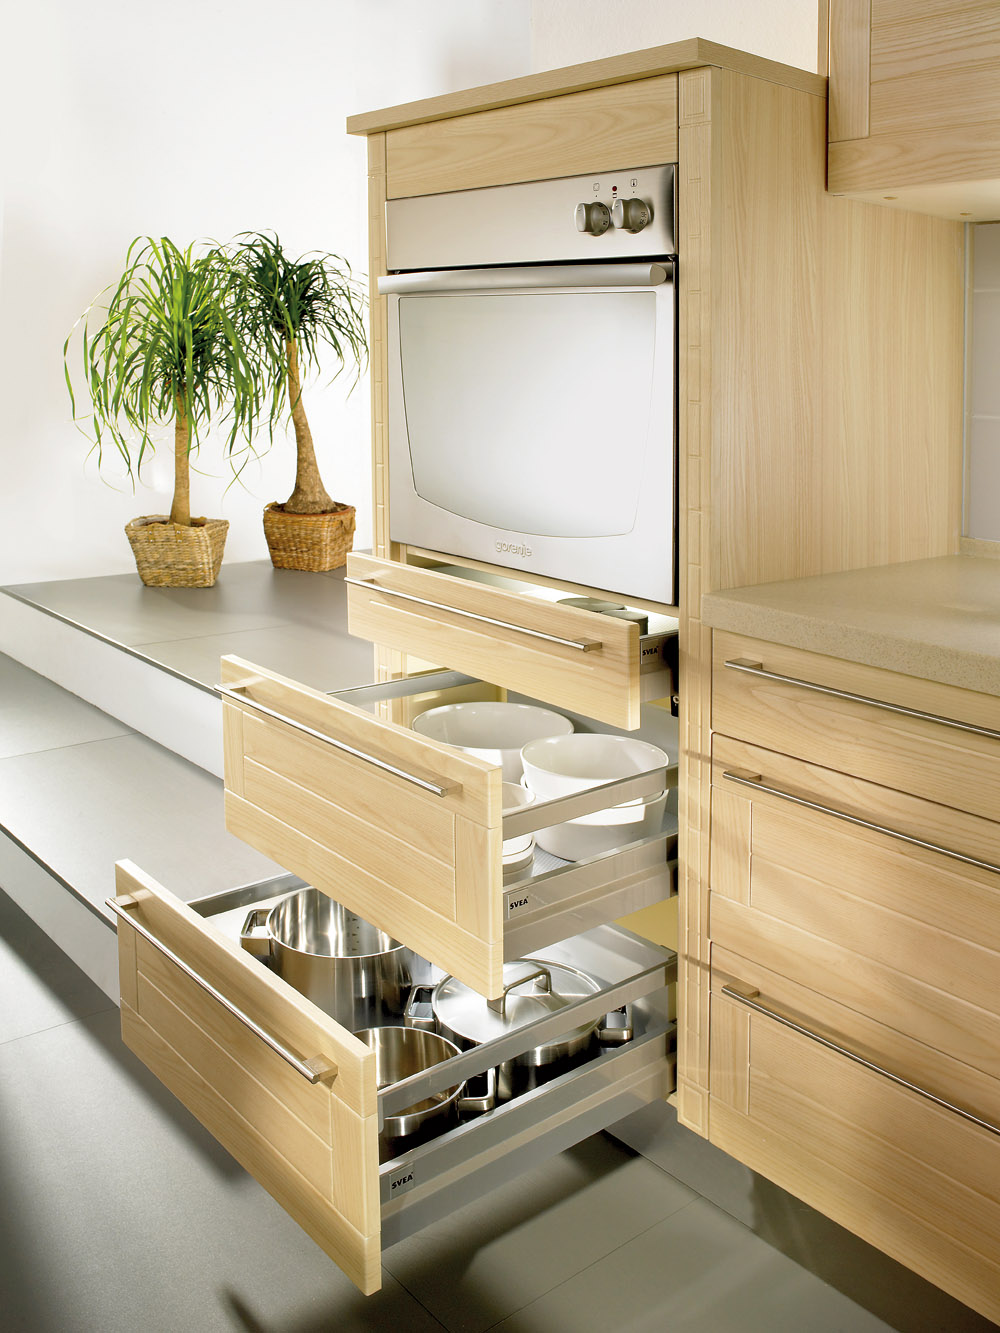 Oven Drawers